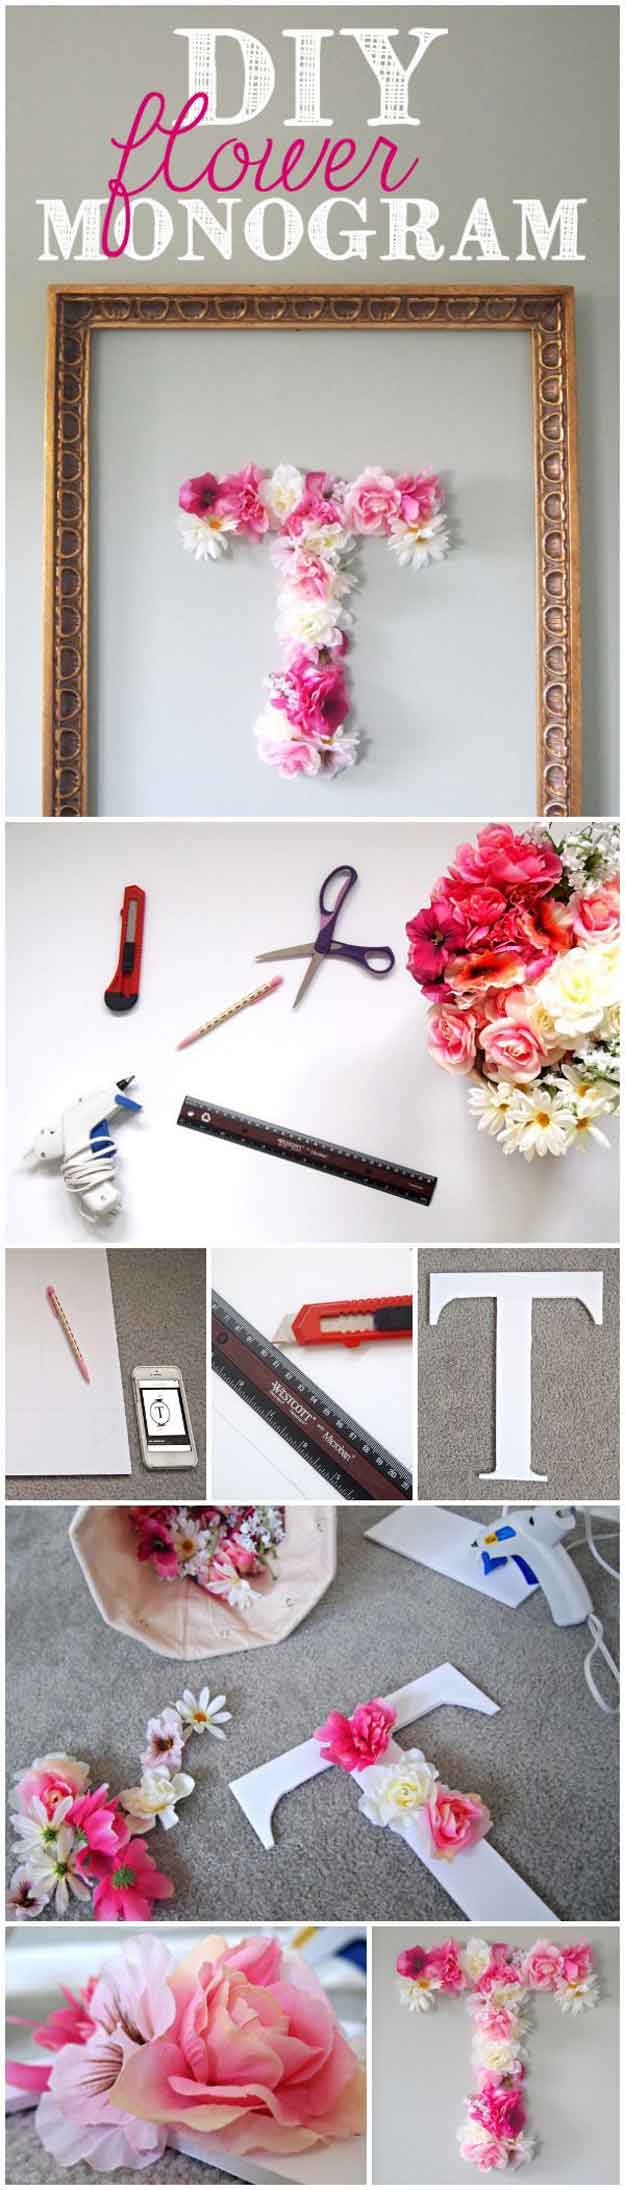 Cute DIY Room Decor Ideas for Teens   DIY Bedroom Projects for Teenagers    DIY Flower. 37 Insanely Cute Teen Bedroom Ideas for DIY Decor   Crafts for Teens